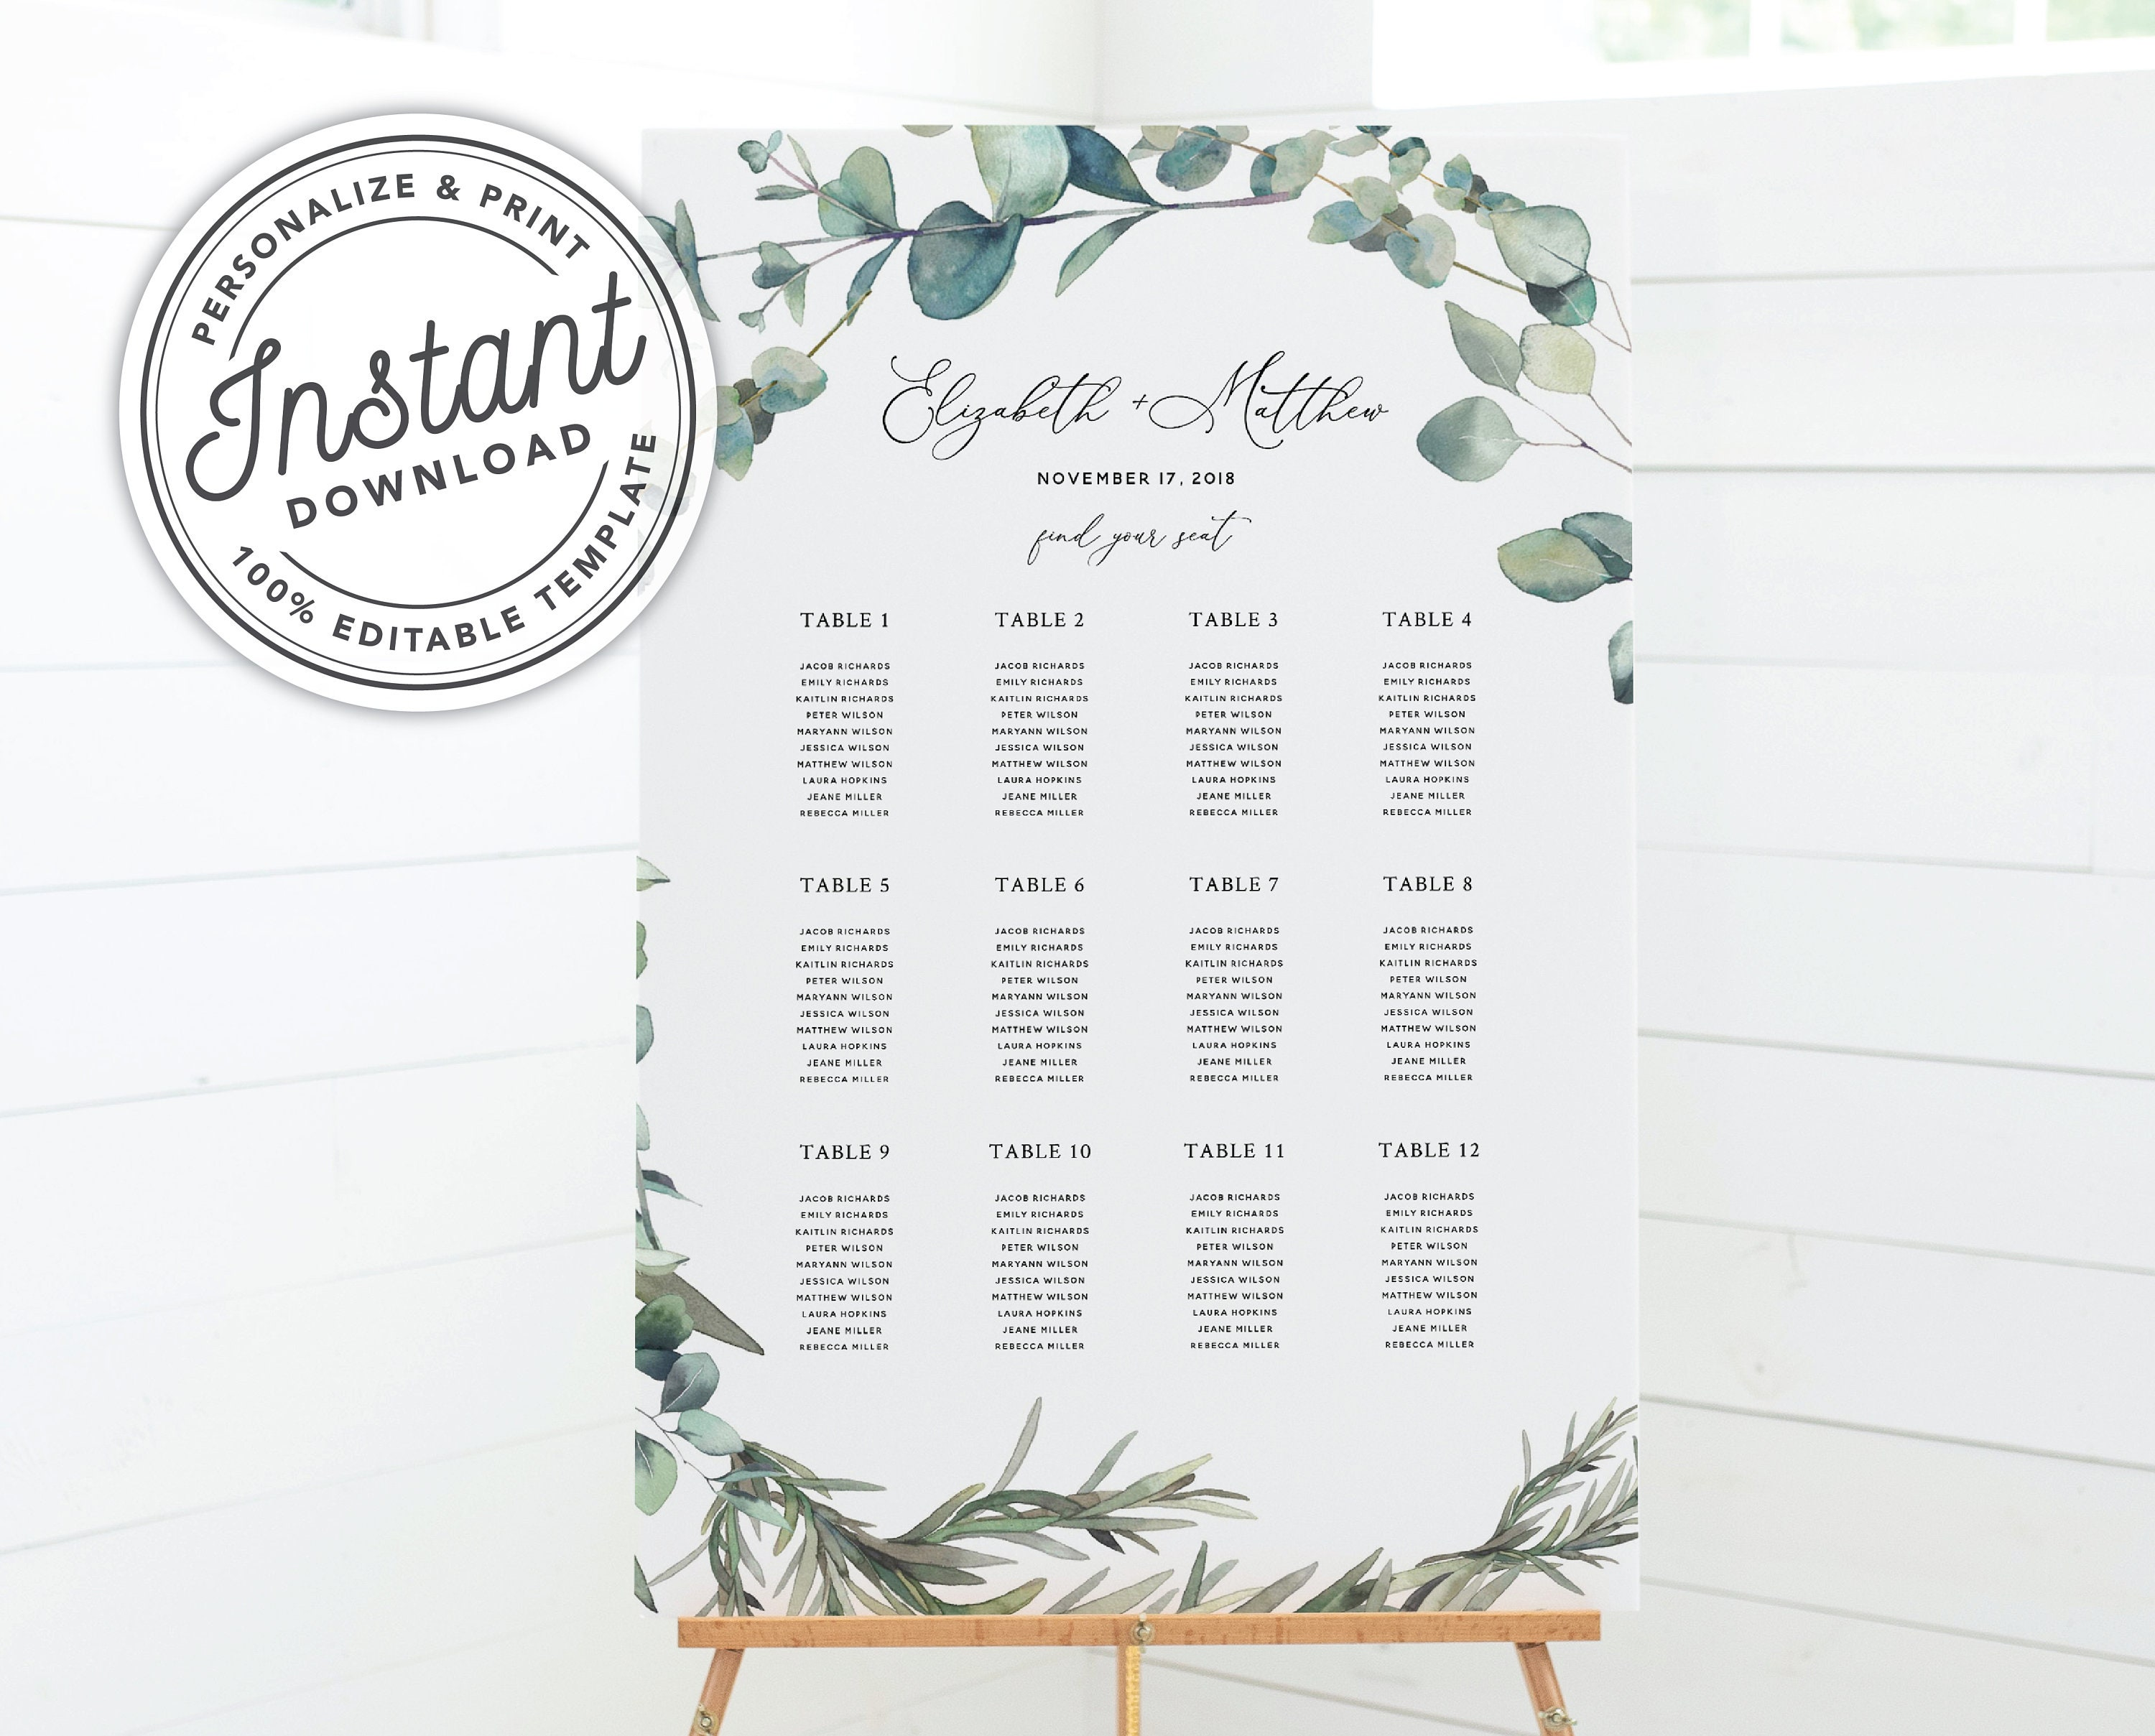 photo regarding Printable Wedding Seating Chart named Boho Wreath Printable Wedding ceremony Seating Chart with Eucalyptus Greenery (18x24, 24x36, A2, A1) Prompt Down load Editable Template #023